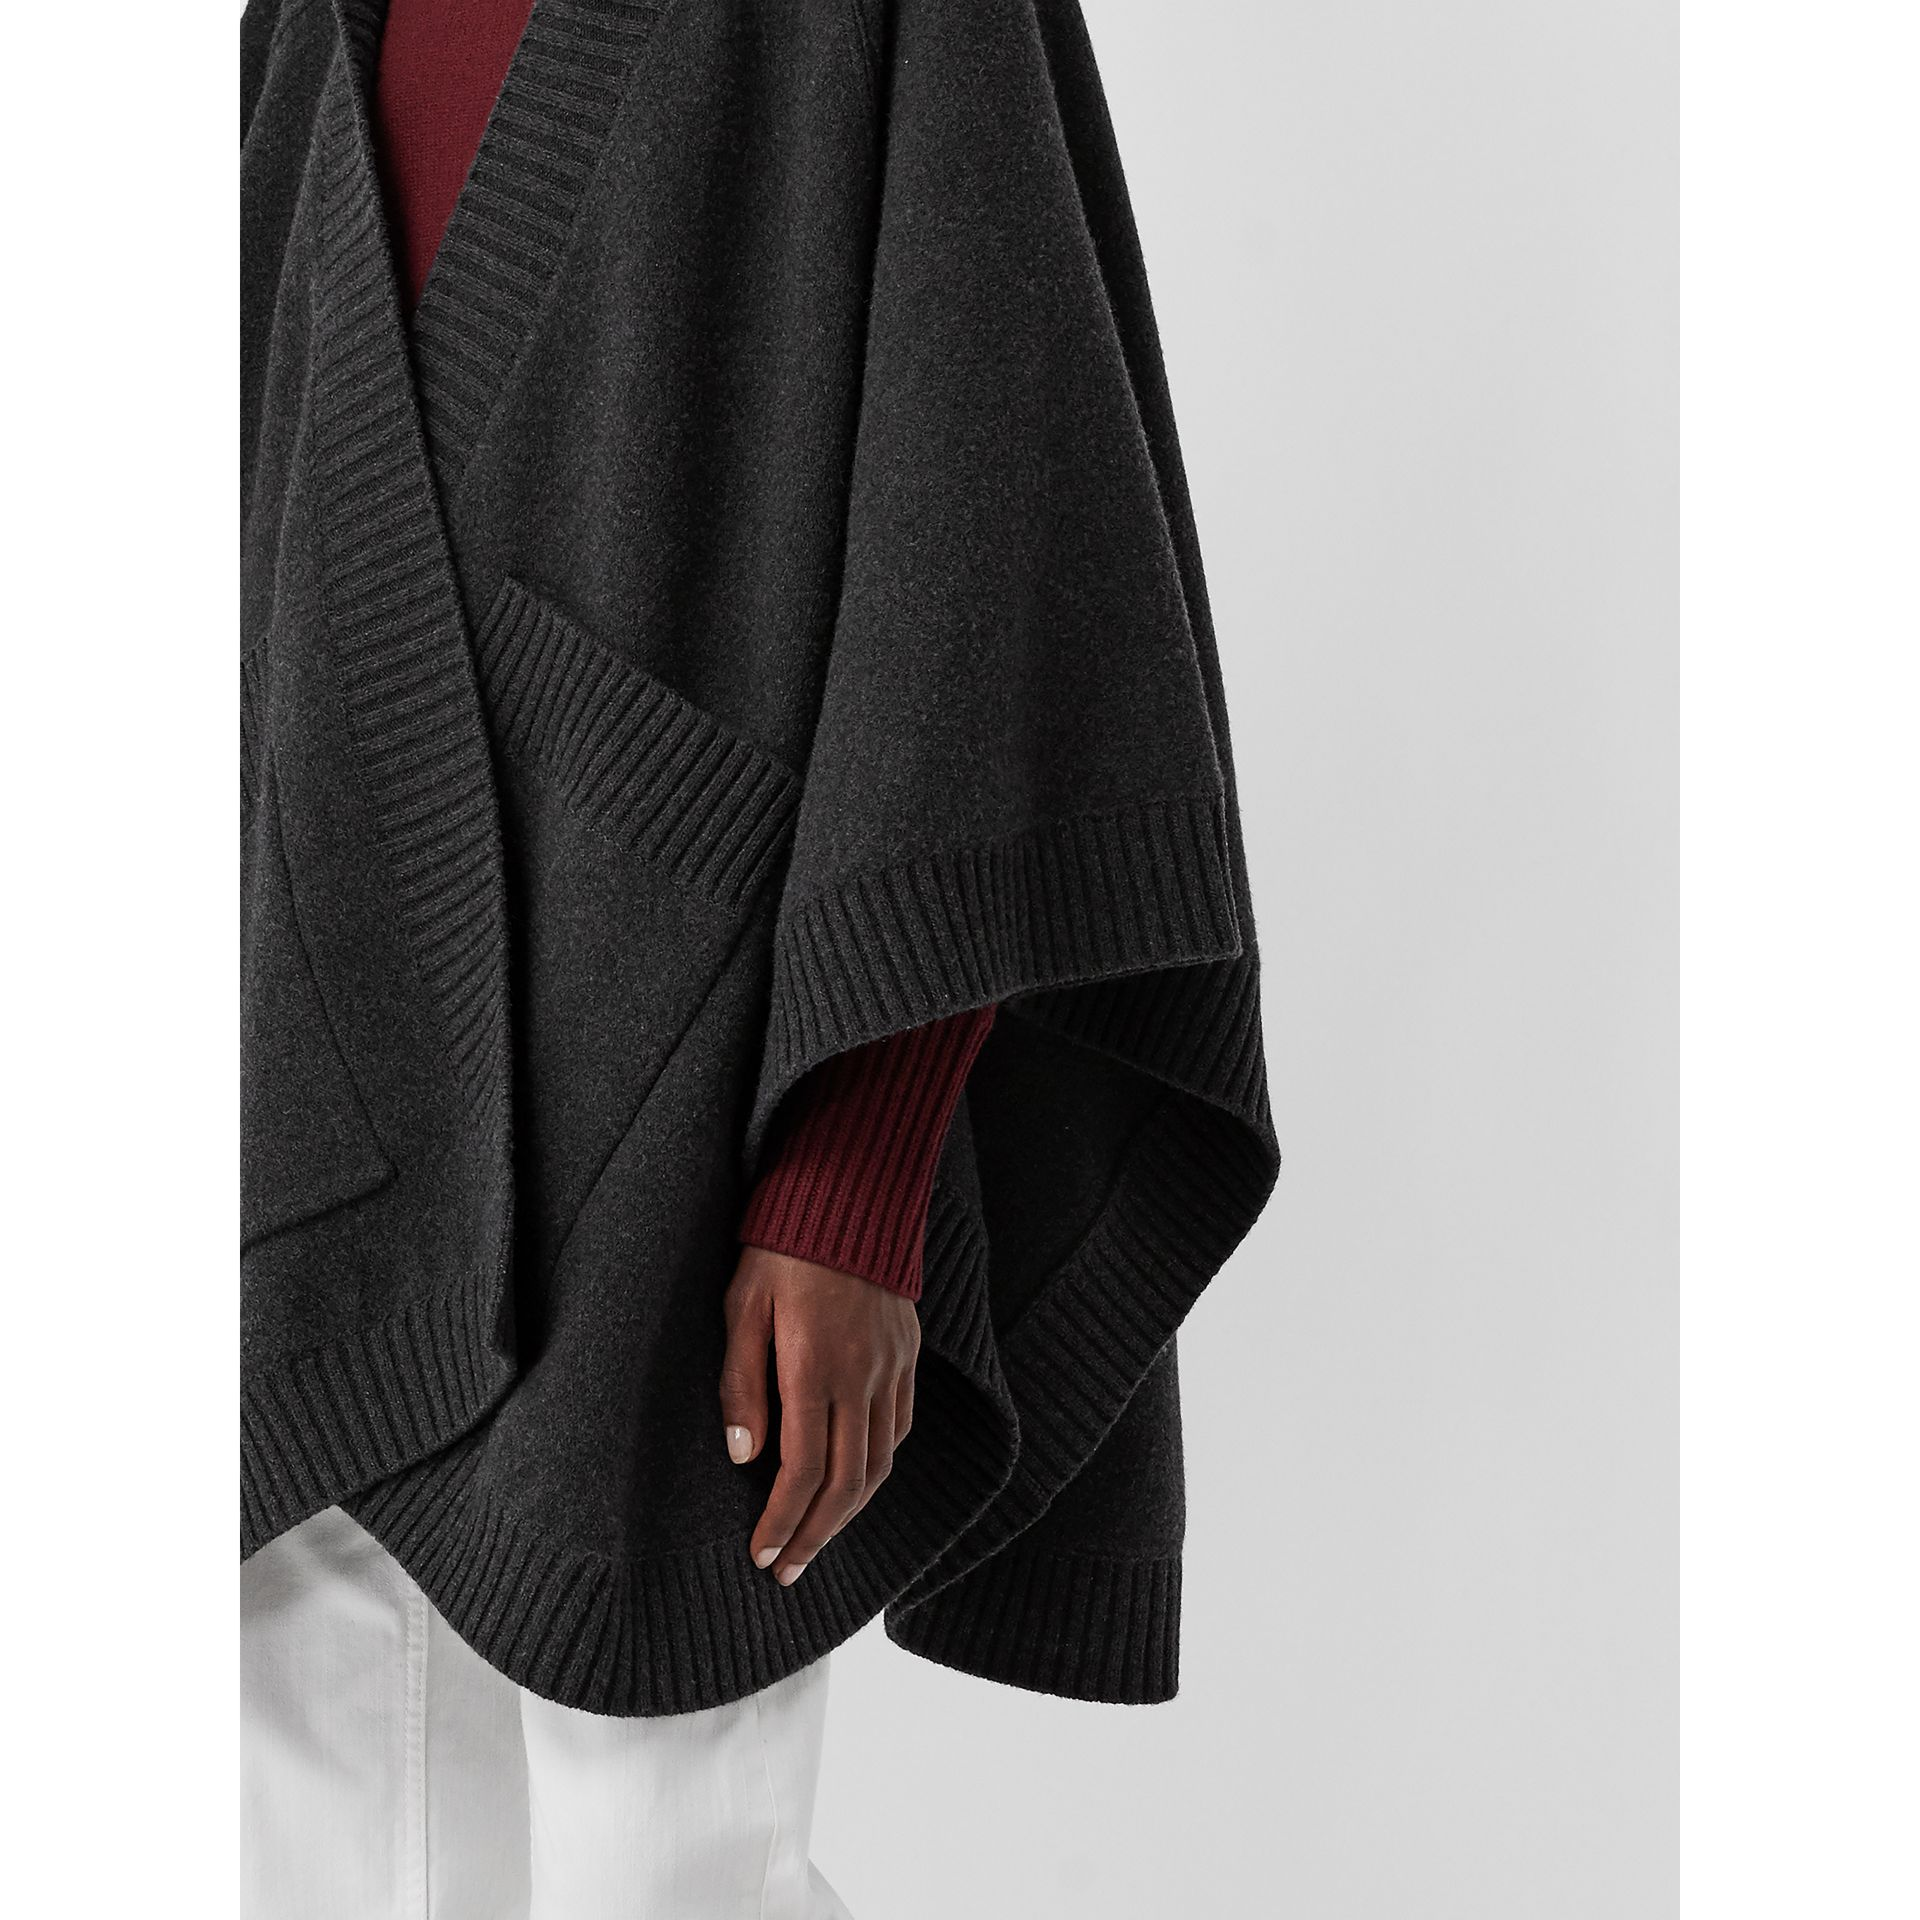 Crest Wool Blend Jacquard Hooded Cape in Charcoal - Women | Burberry - gallery image 1